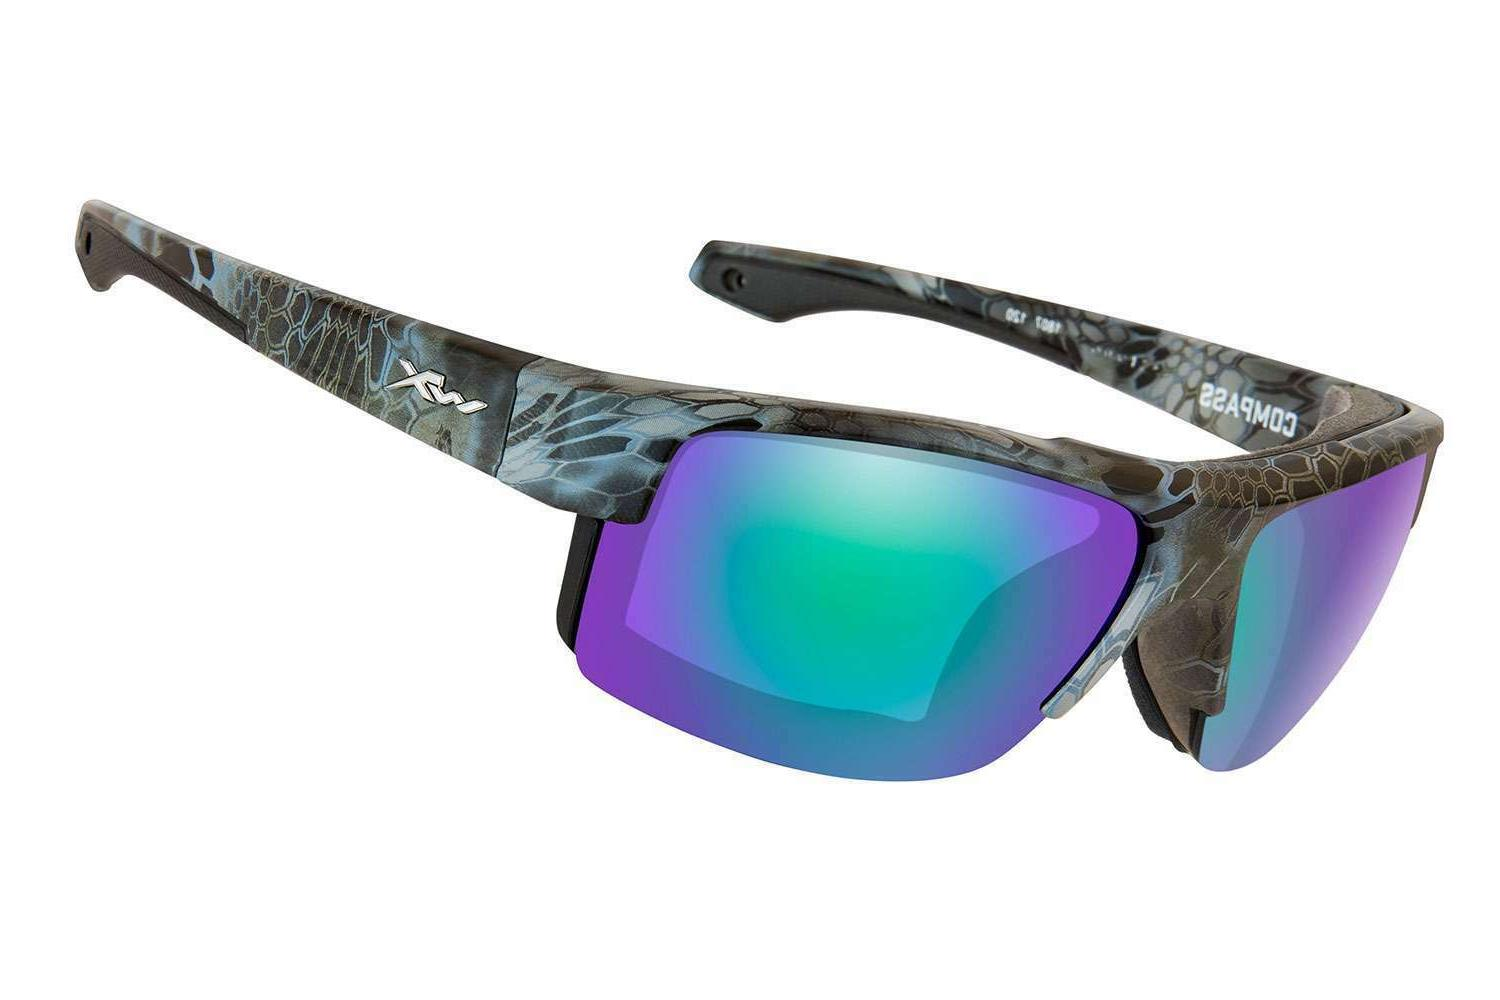 TOREGE POLARIZED SPORTS SUNGLASSES Black tips and Green Lens